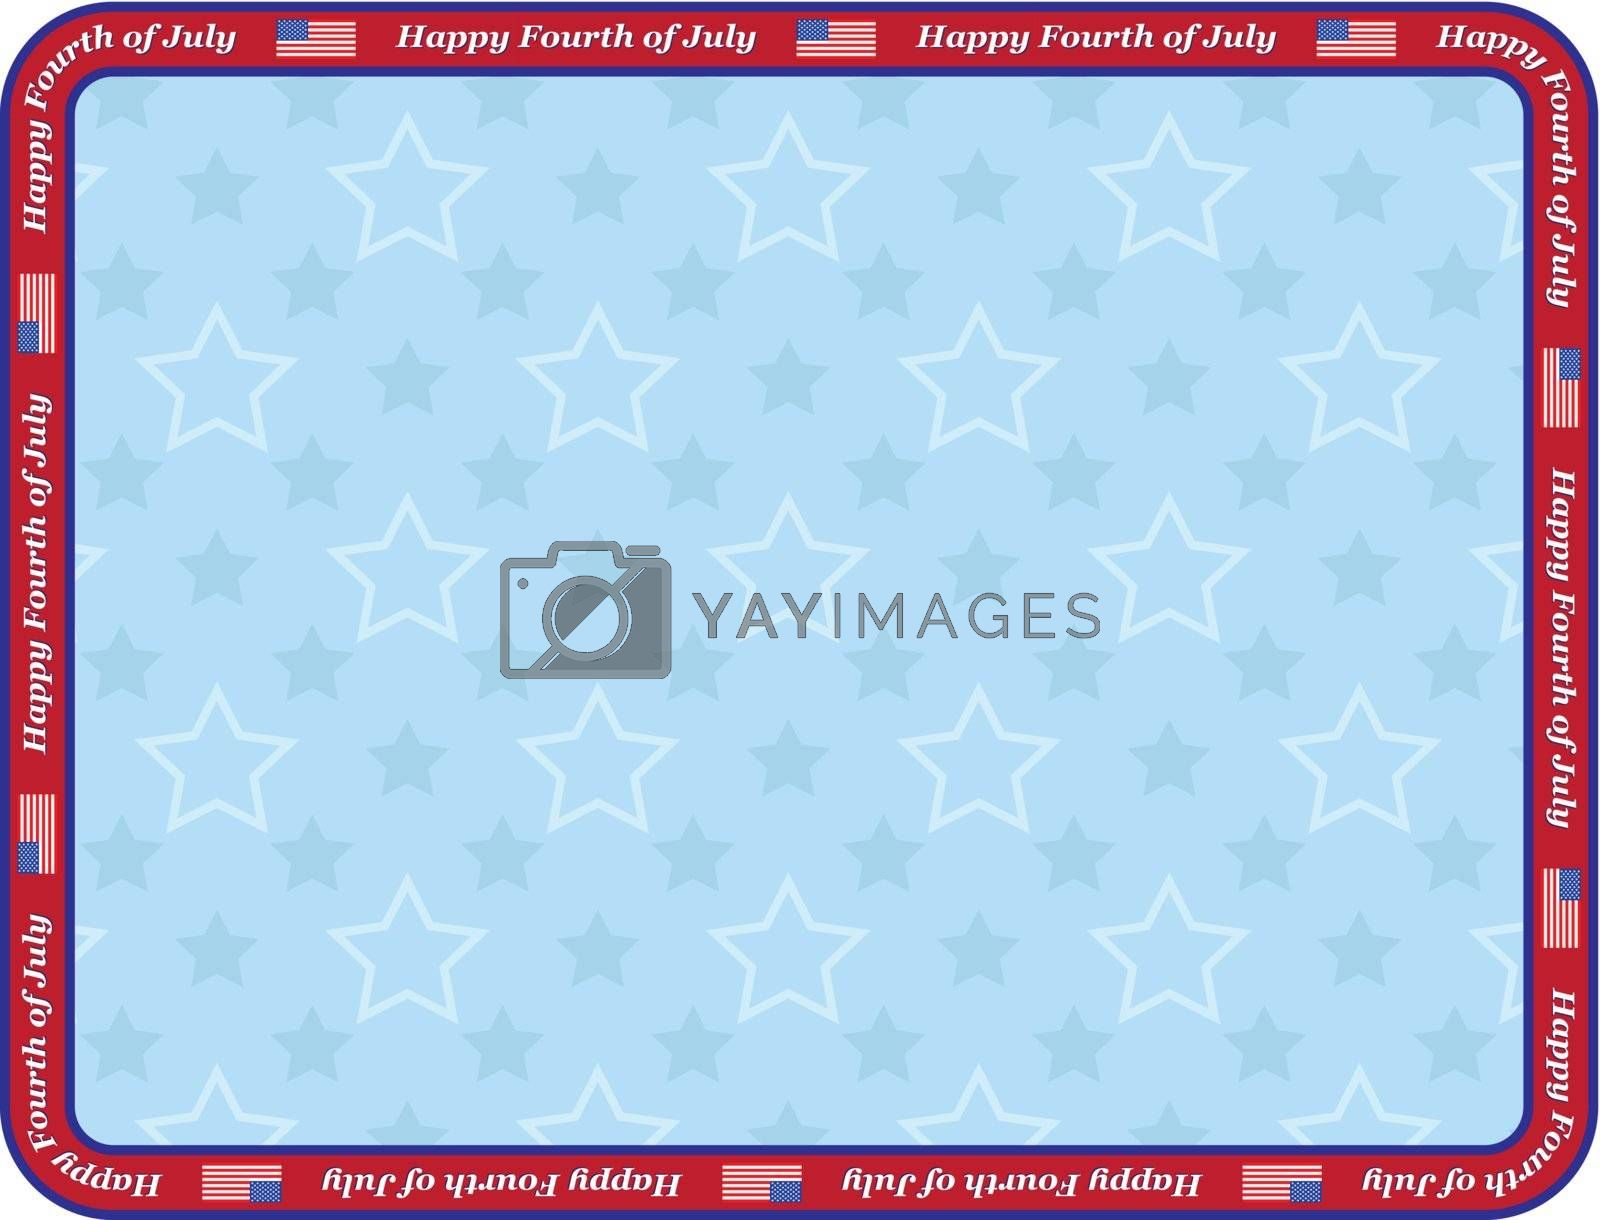 Happy Fourth of July congratulation card